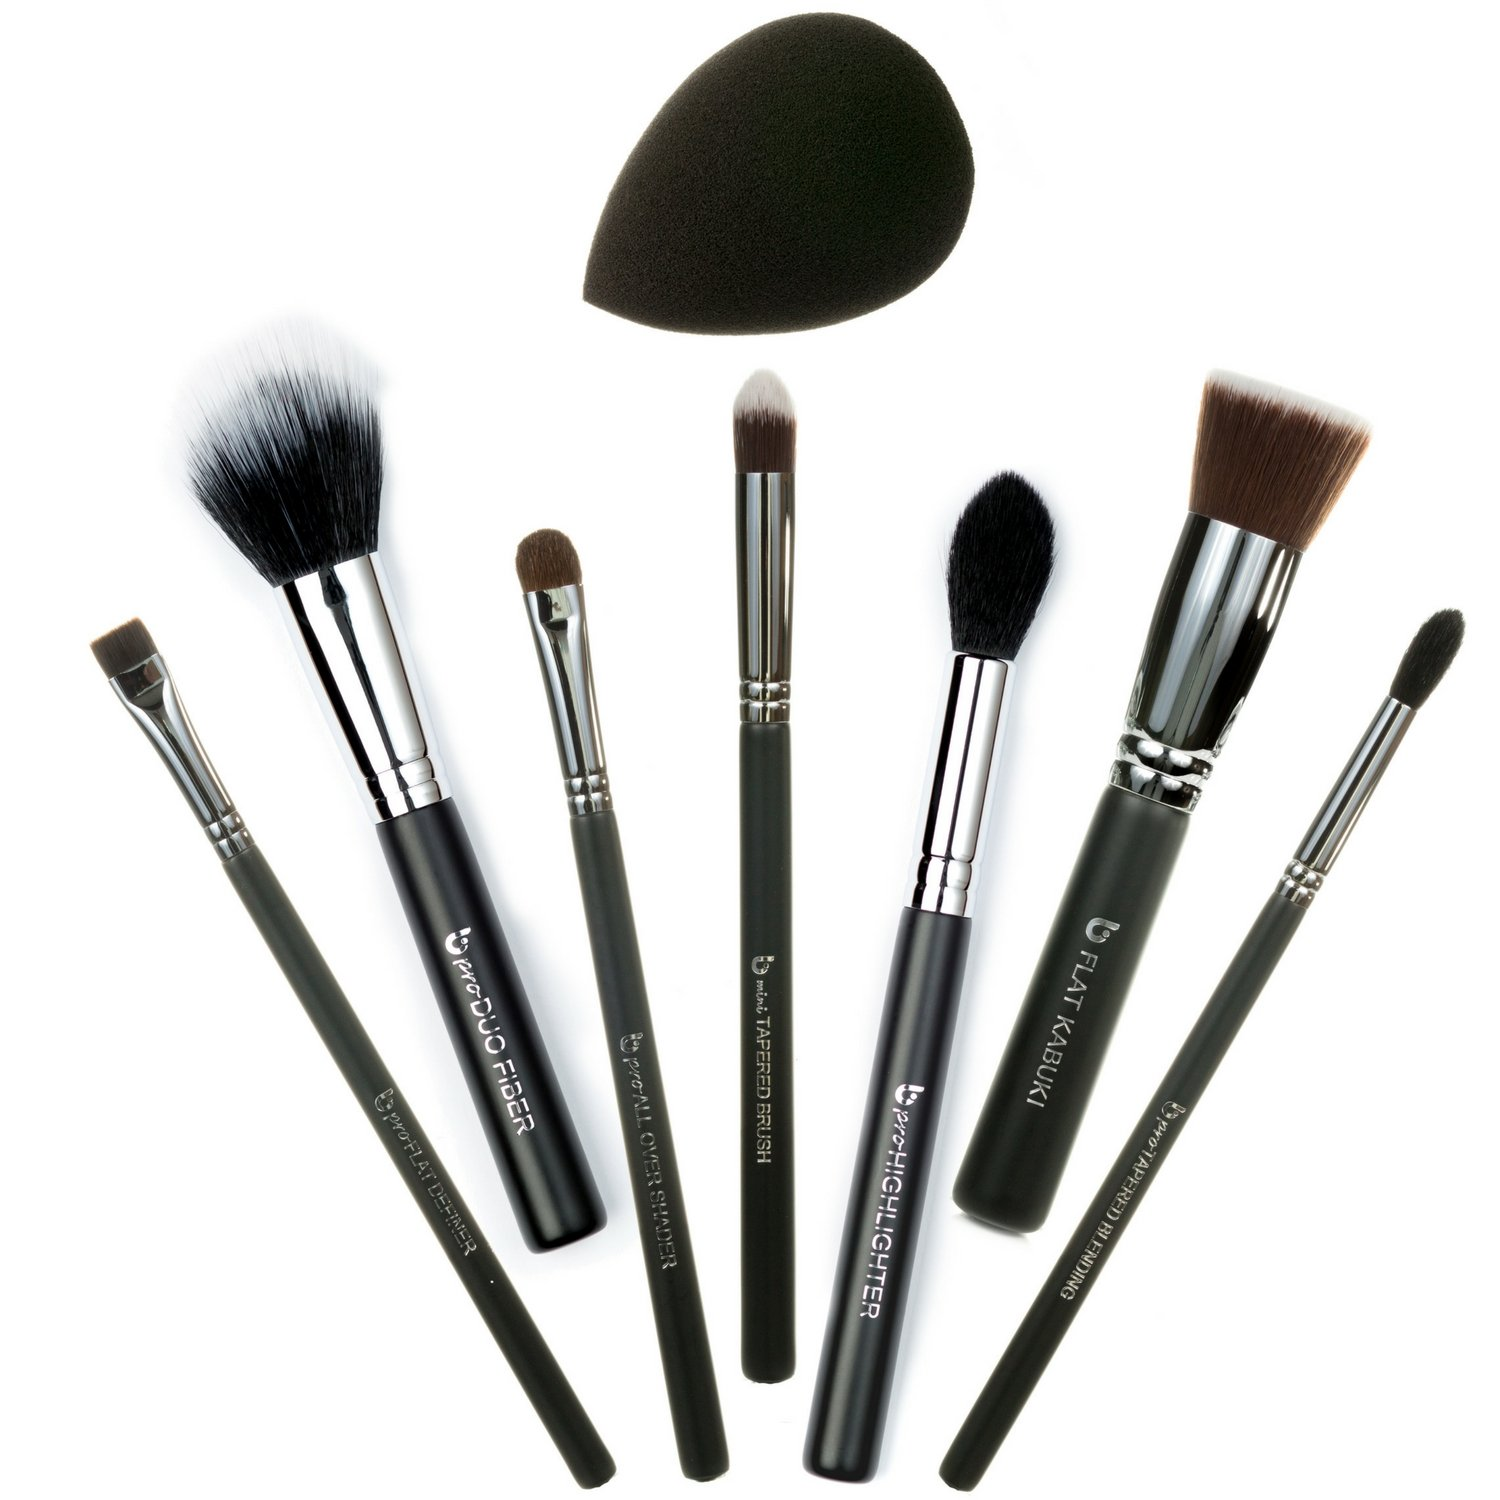 Basic Face 8pc Makeup Brush Set Includes Flat Top Kabuki, mini Tapered, Tapered Blending, All Over Shader, Flat Definer, Duo Fiber, Highlighter, Black Teardrop Makeup Sponge